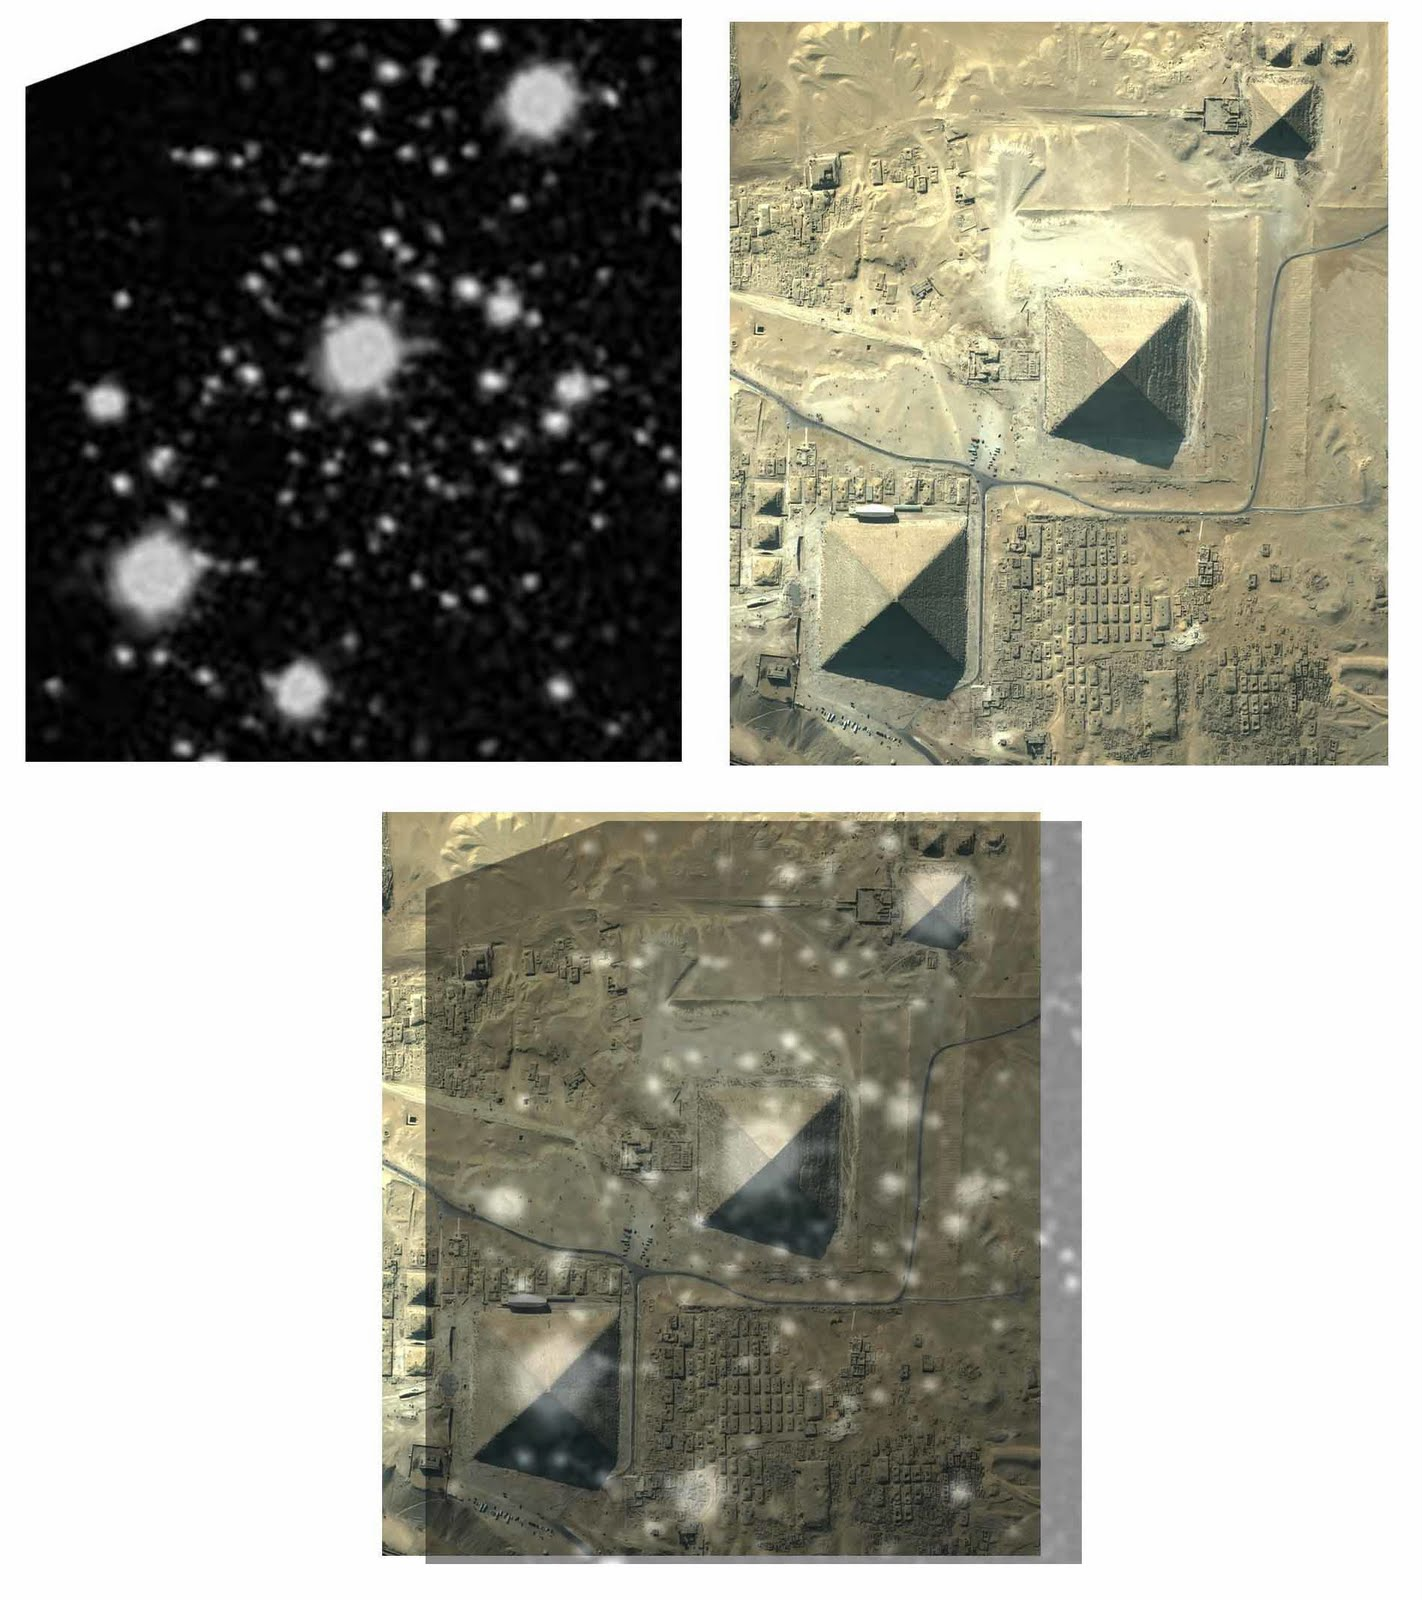 Astromic's Backyard: What's the Mystery about the Pyramids ...